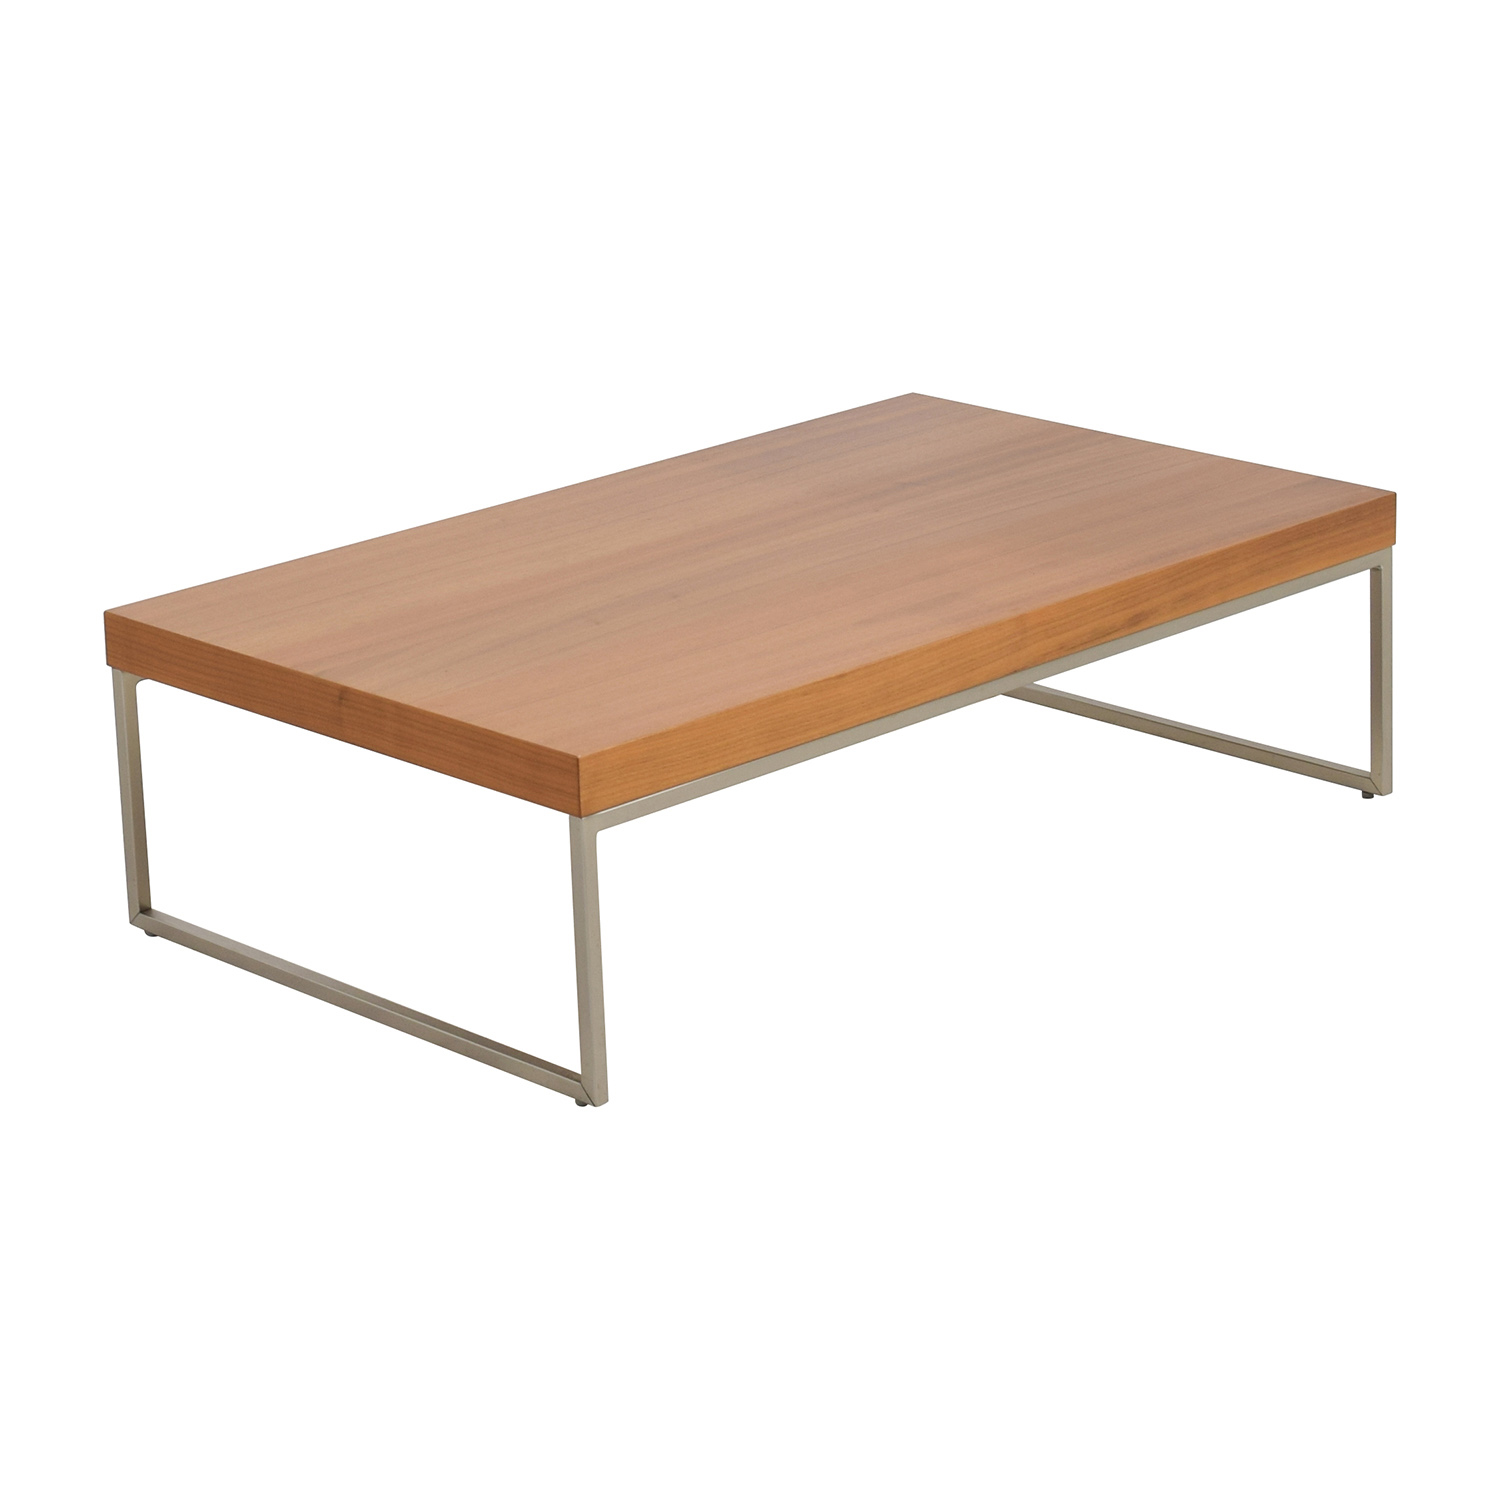 Boconcept coffee table modern coffee tables contemporary coffee tables boconcept lugo amusing - Tafel boconcept ...